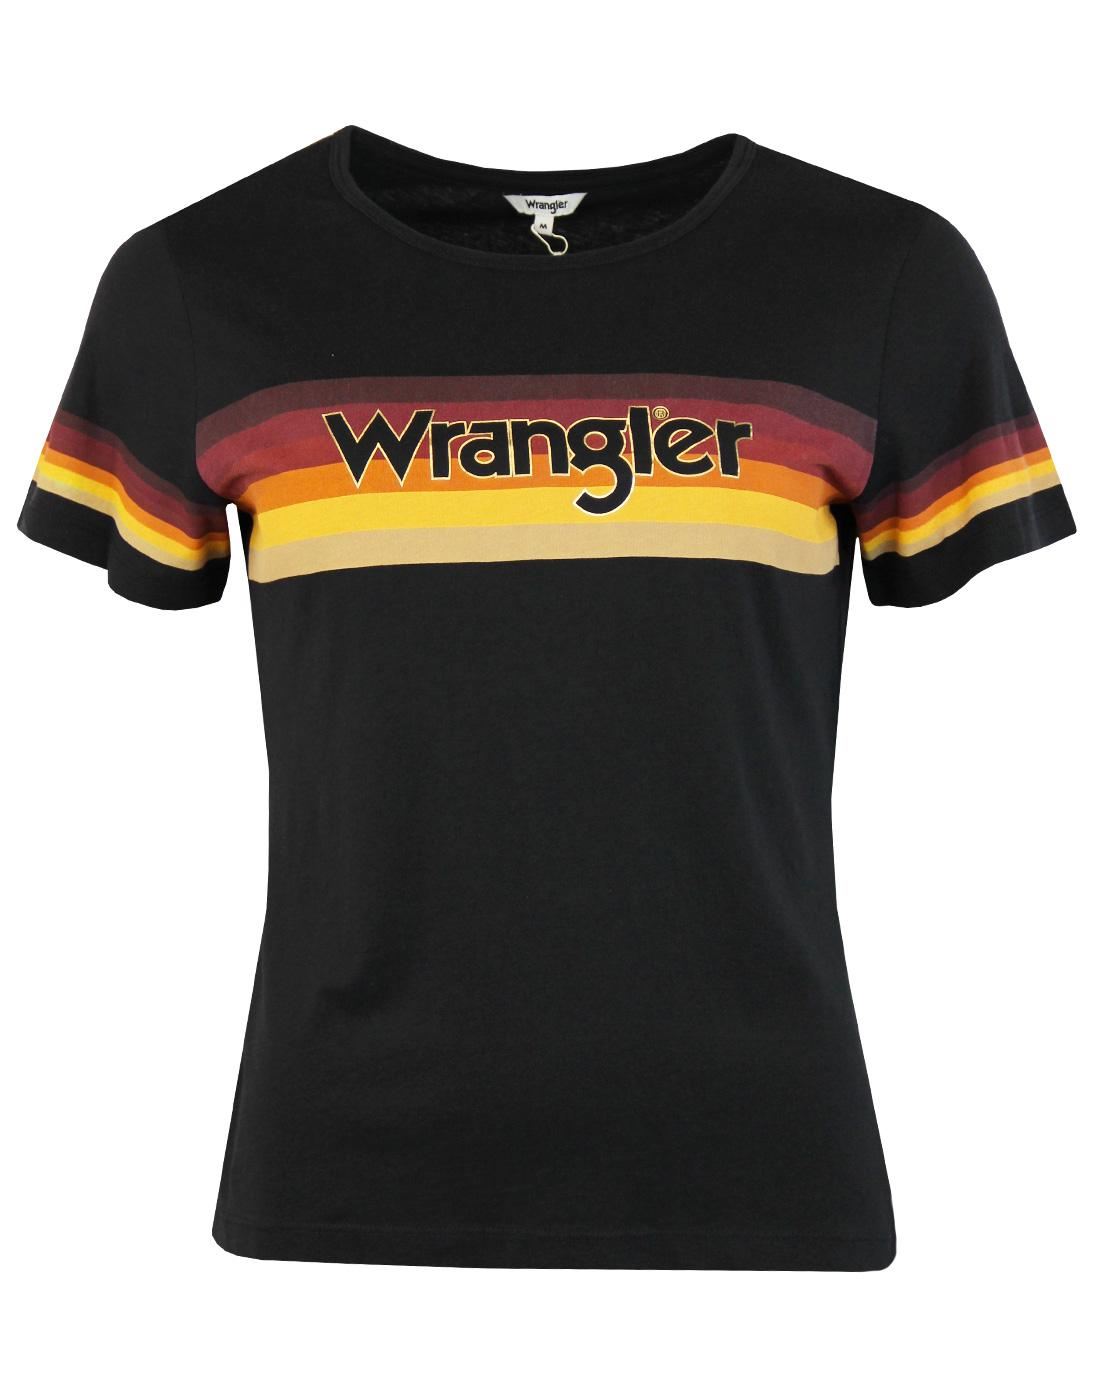 WRANGLER Women's Retro 70s Rainbow Stripe T-shirt